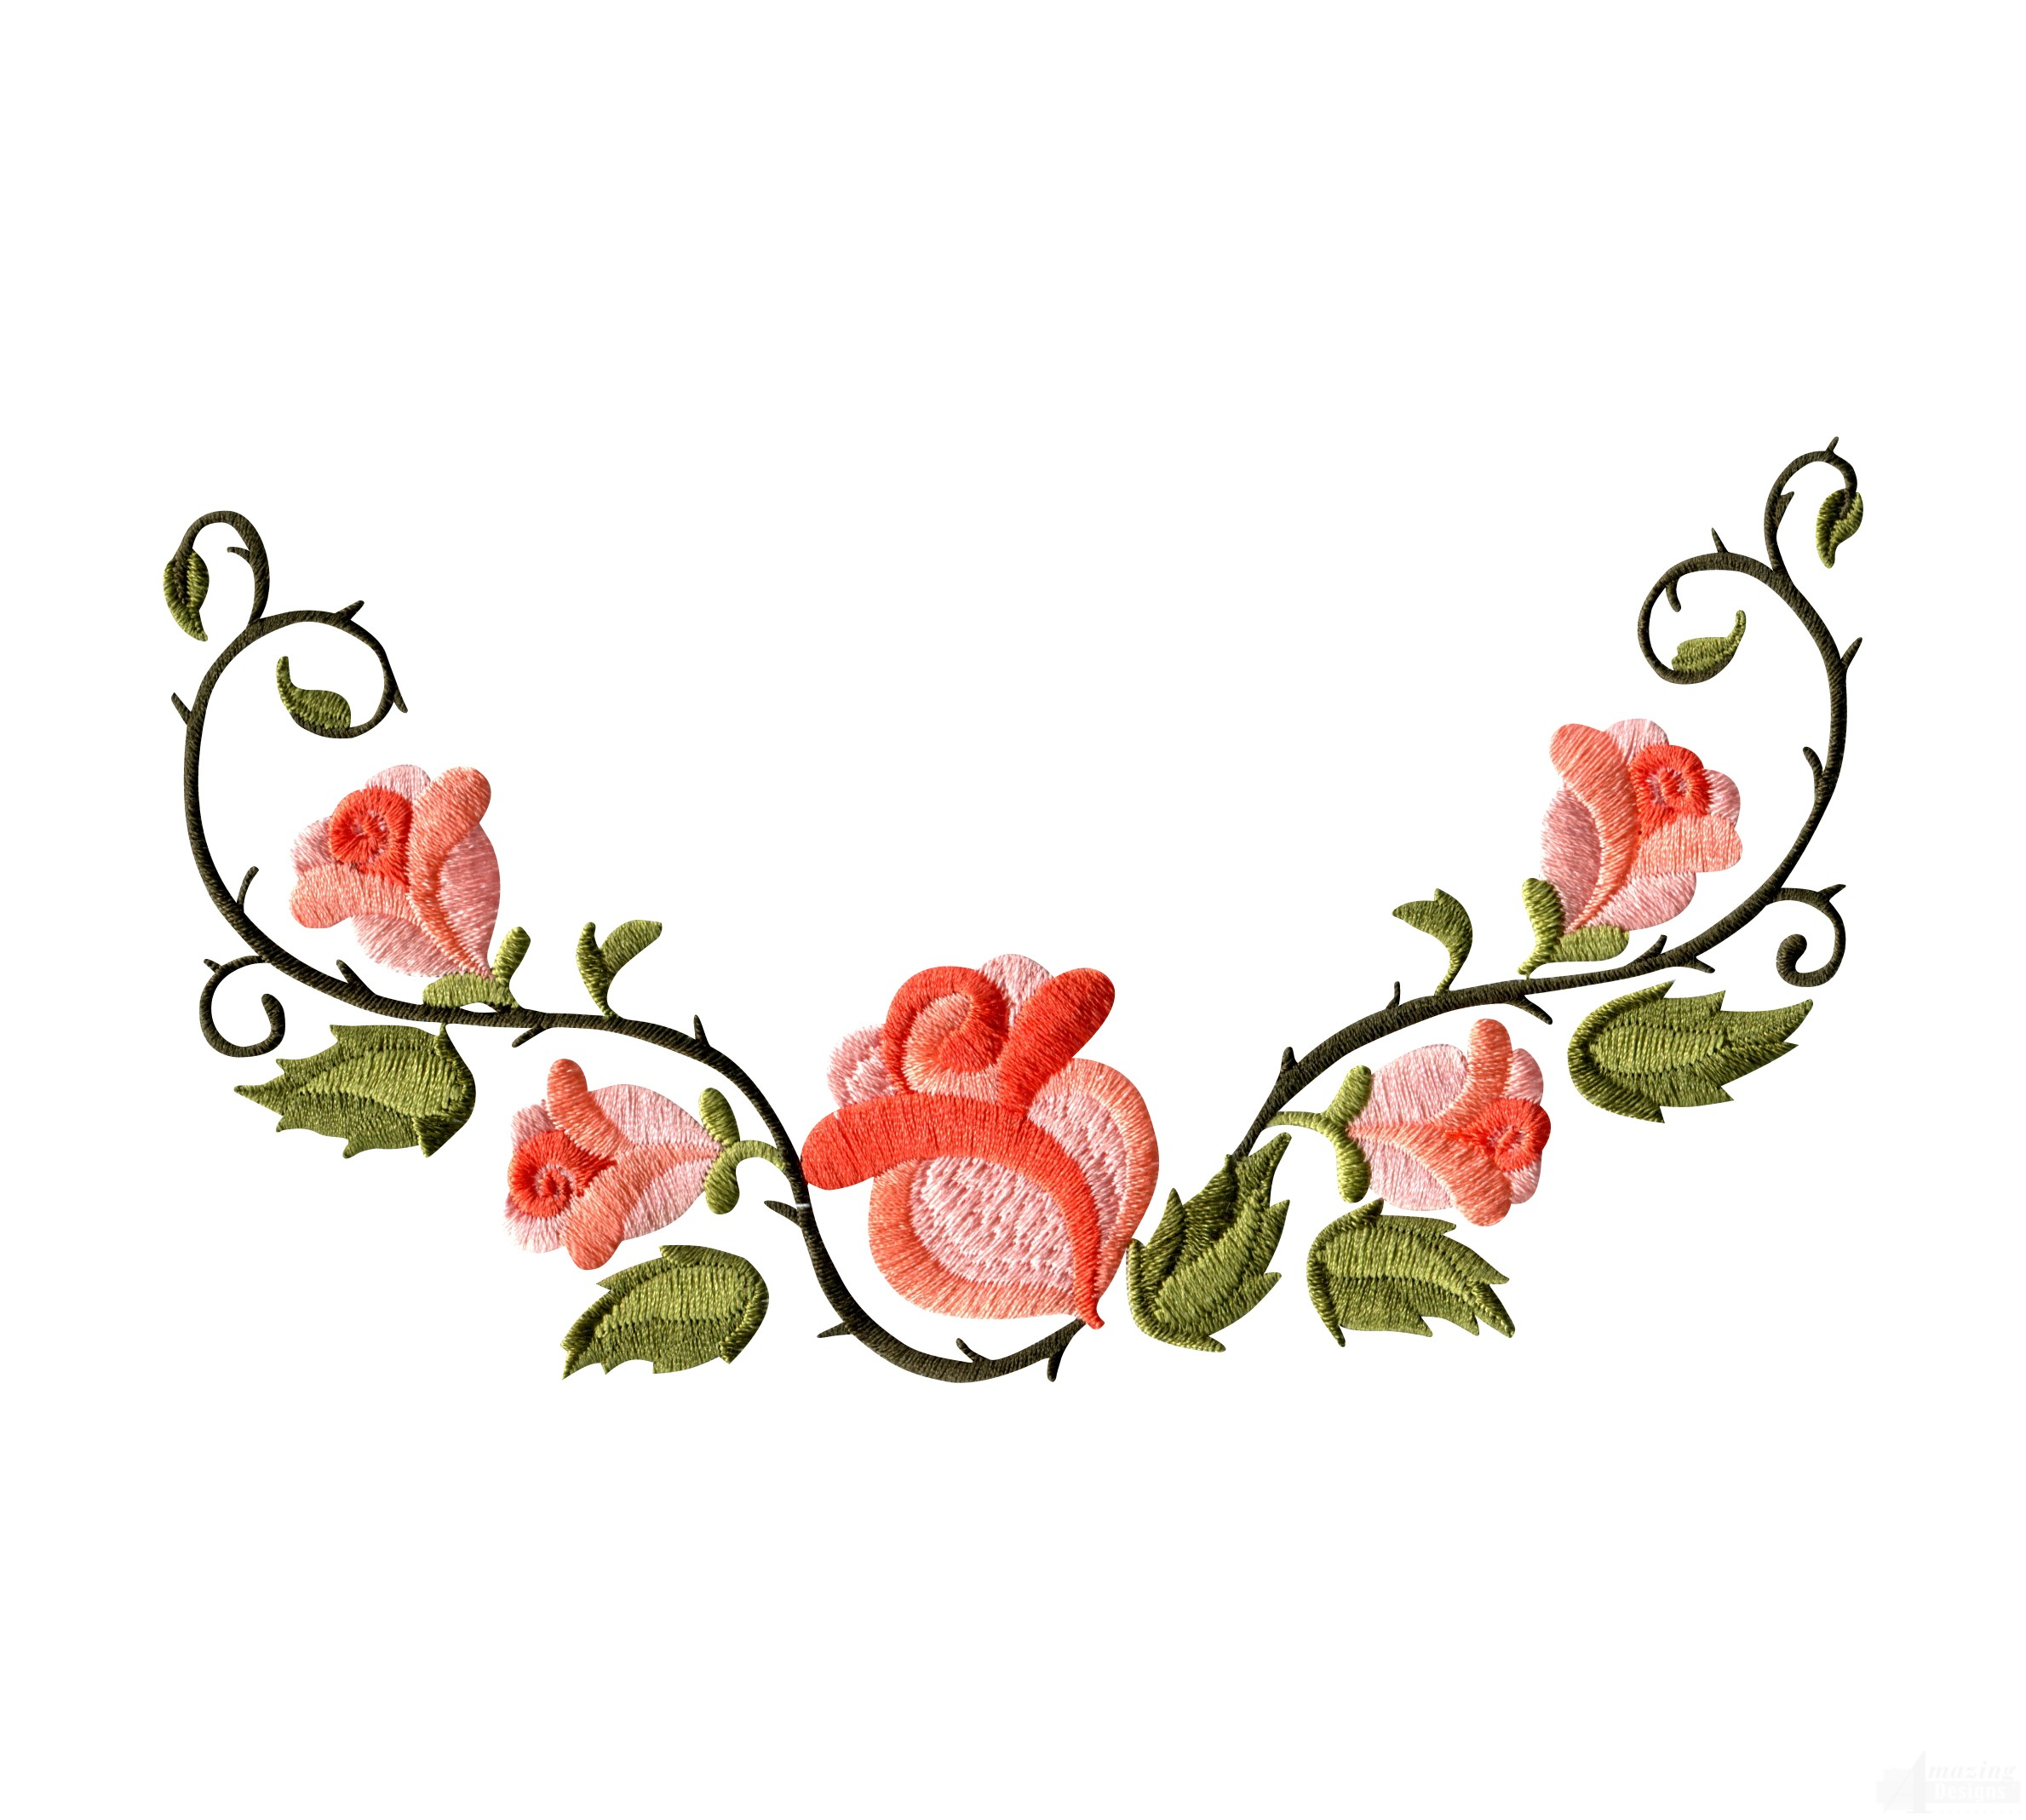 Rose Flower Borders Cliparts